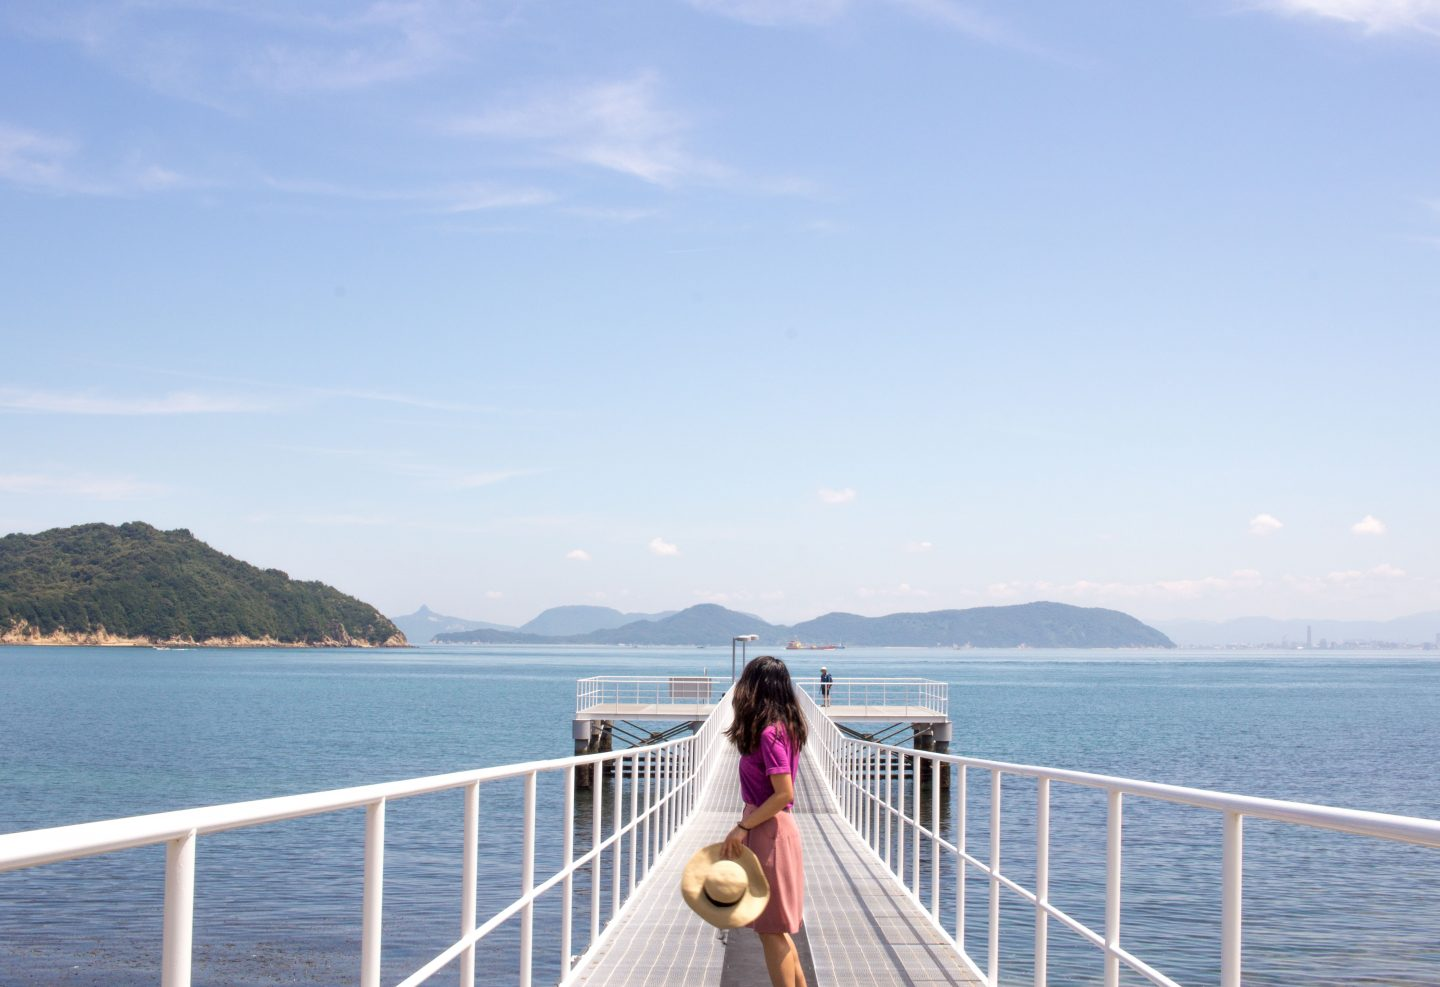 Naoshima Island: 6 things to do on Japan's Art Island